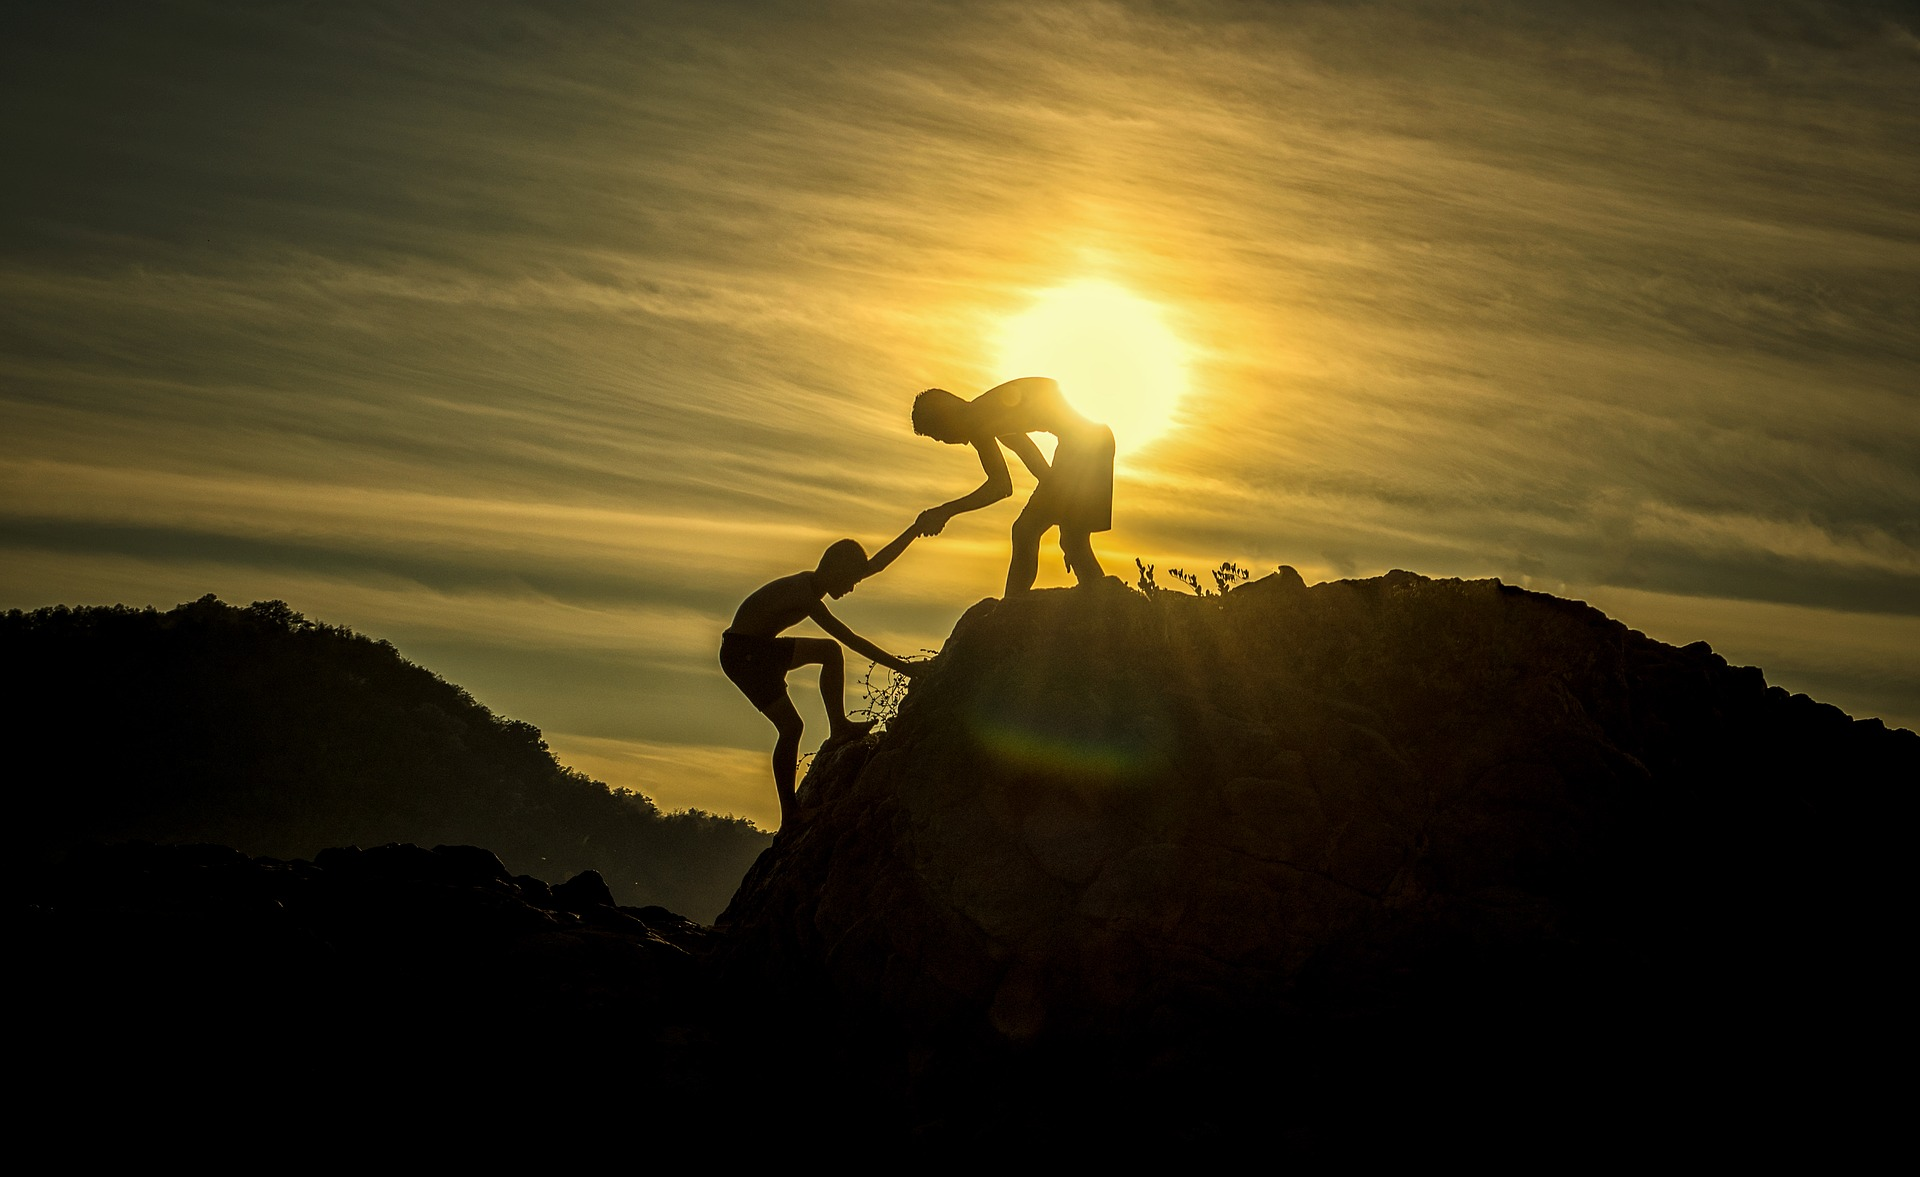 Person reaching out a hand to help another person reach the top of the mountain